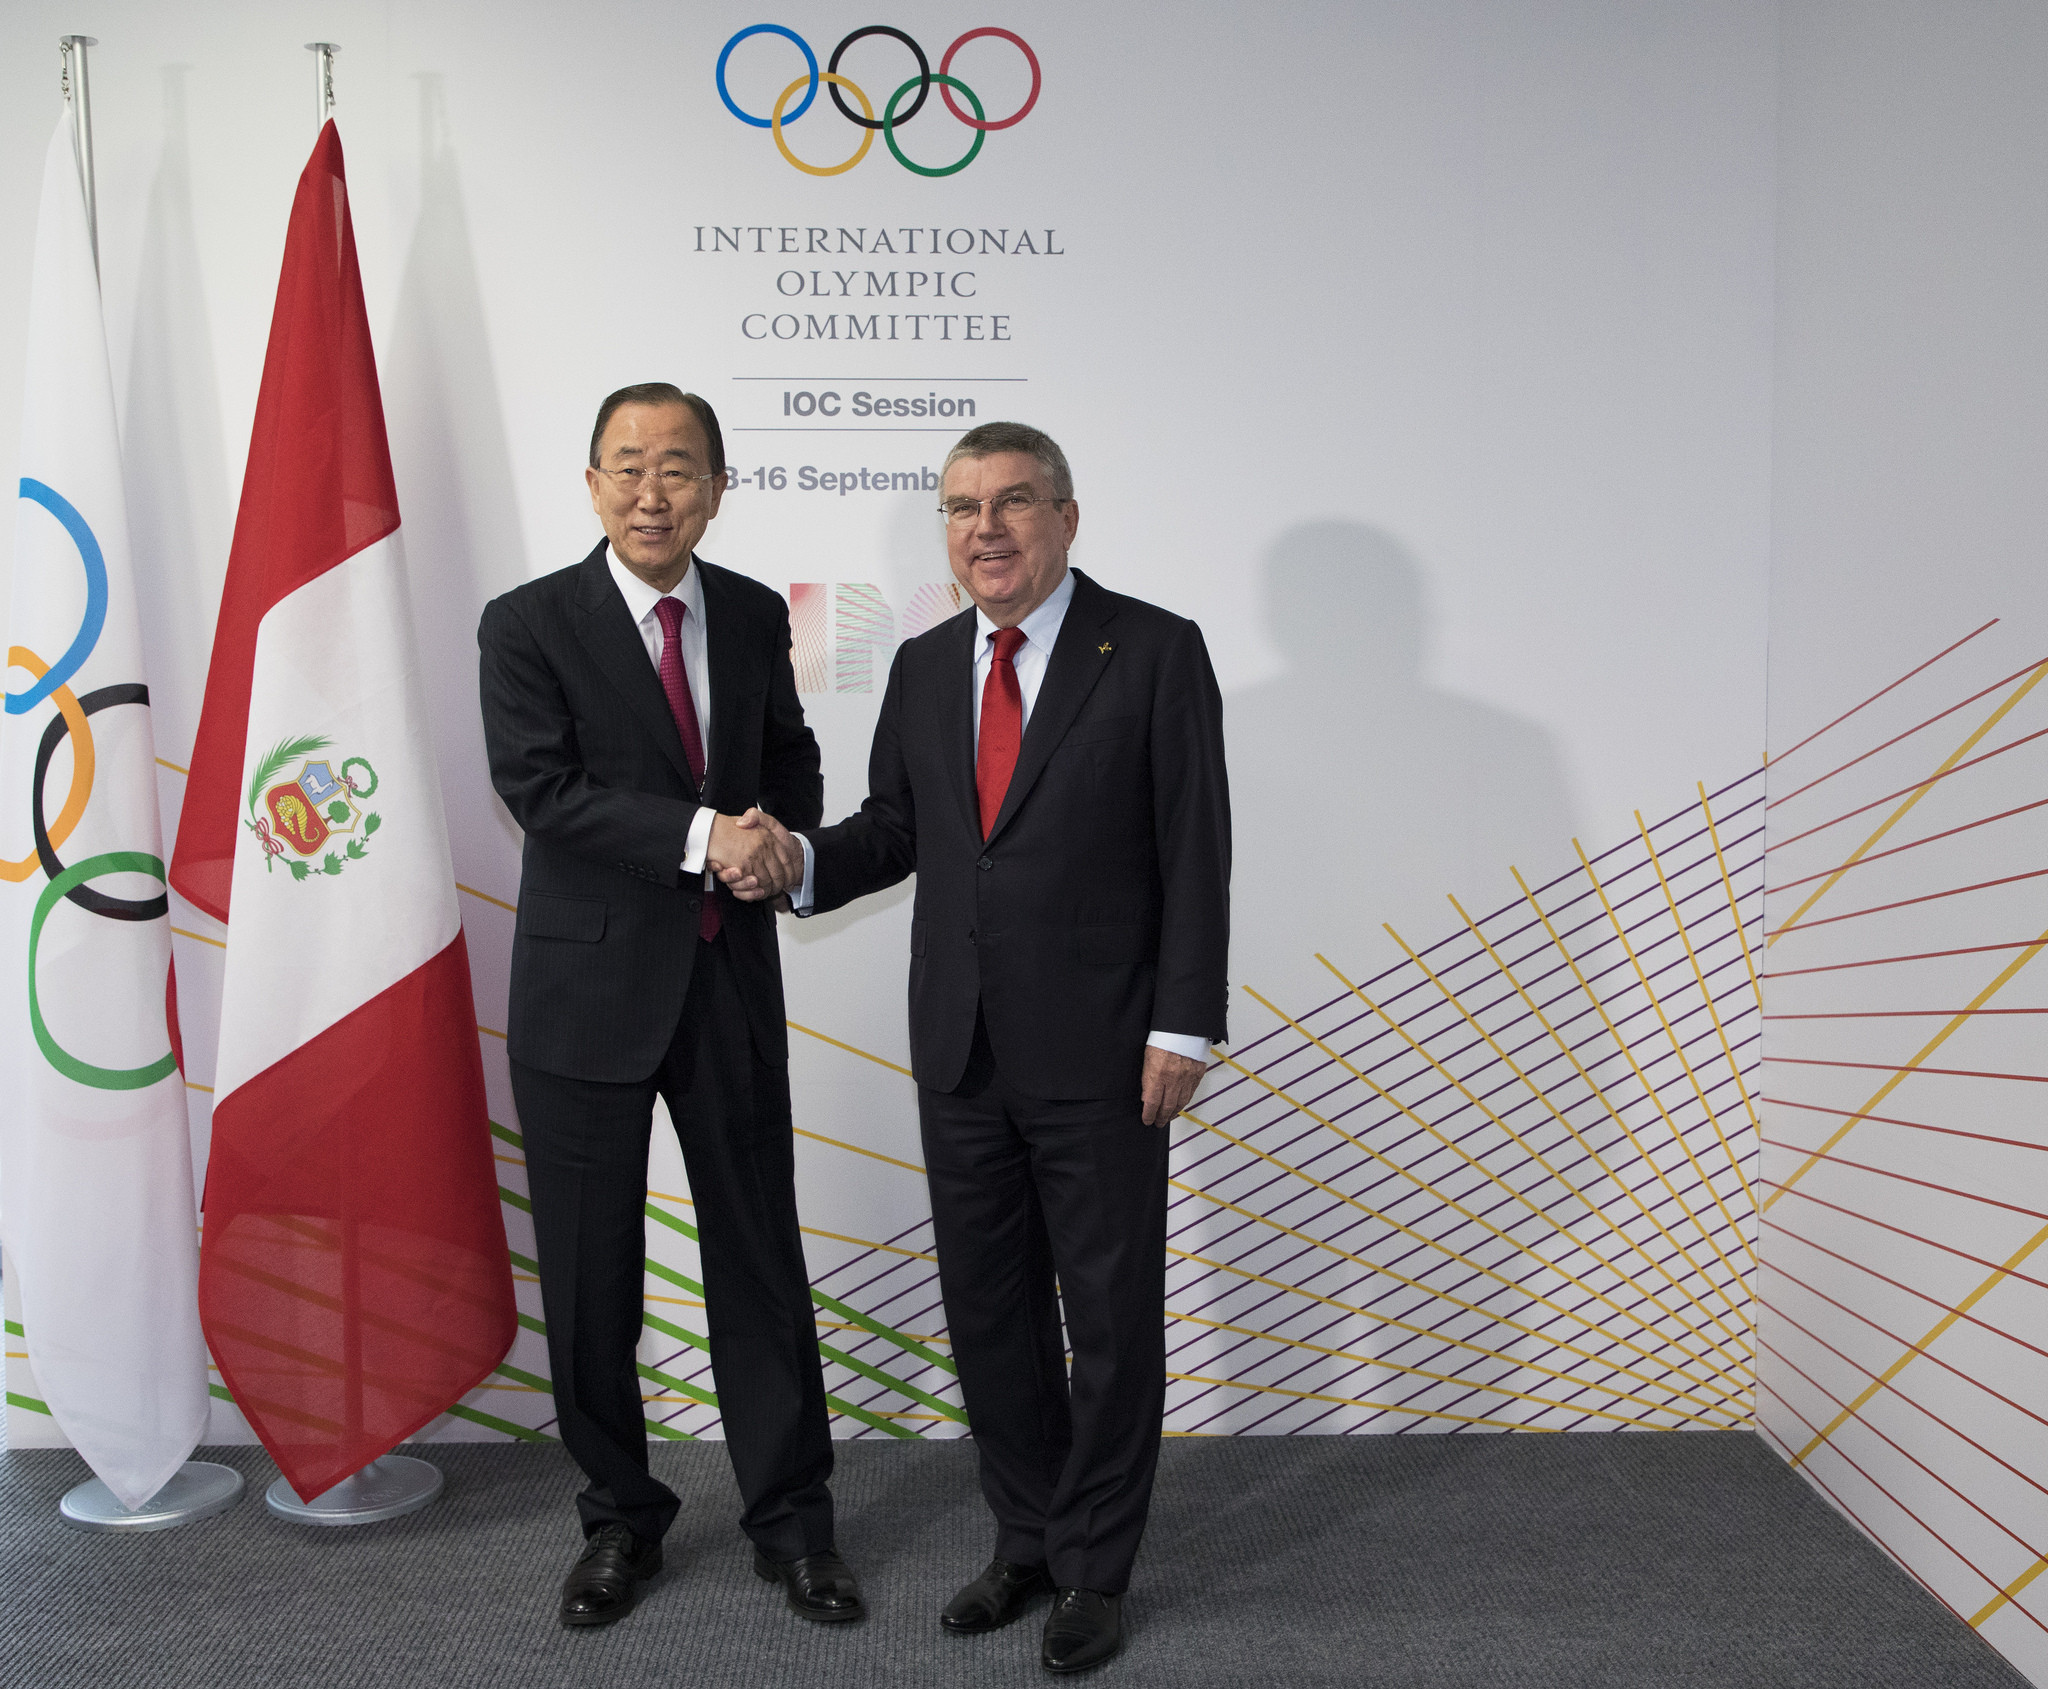 Ban Ki-moon was elected chairman of the IOC Ethics Commission today ©IOC